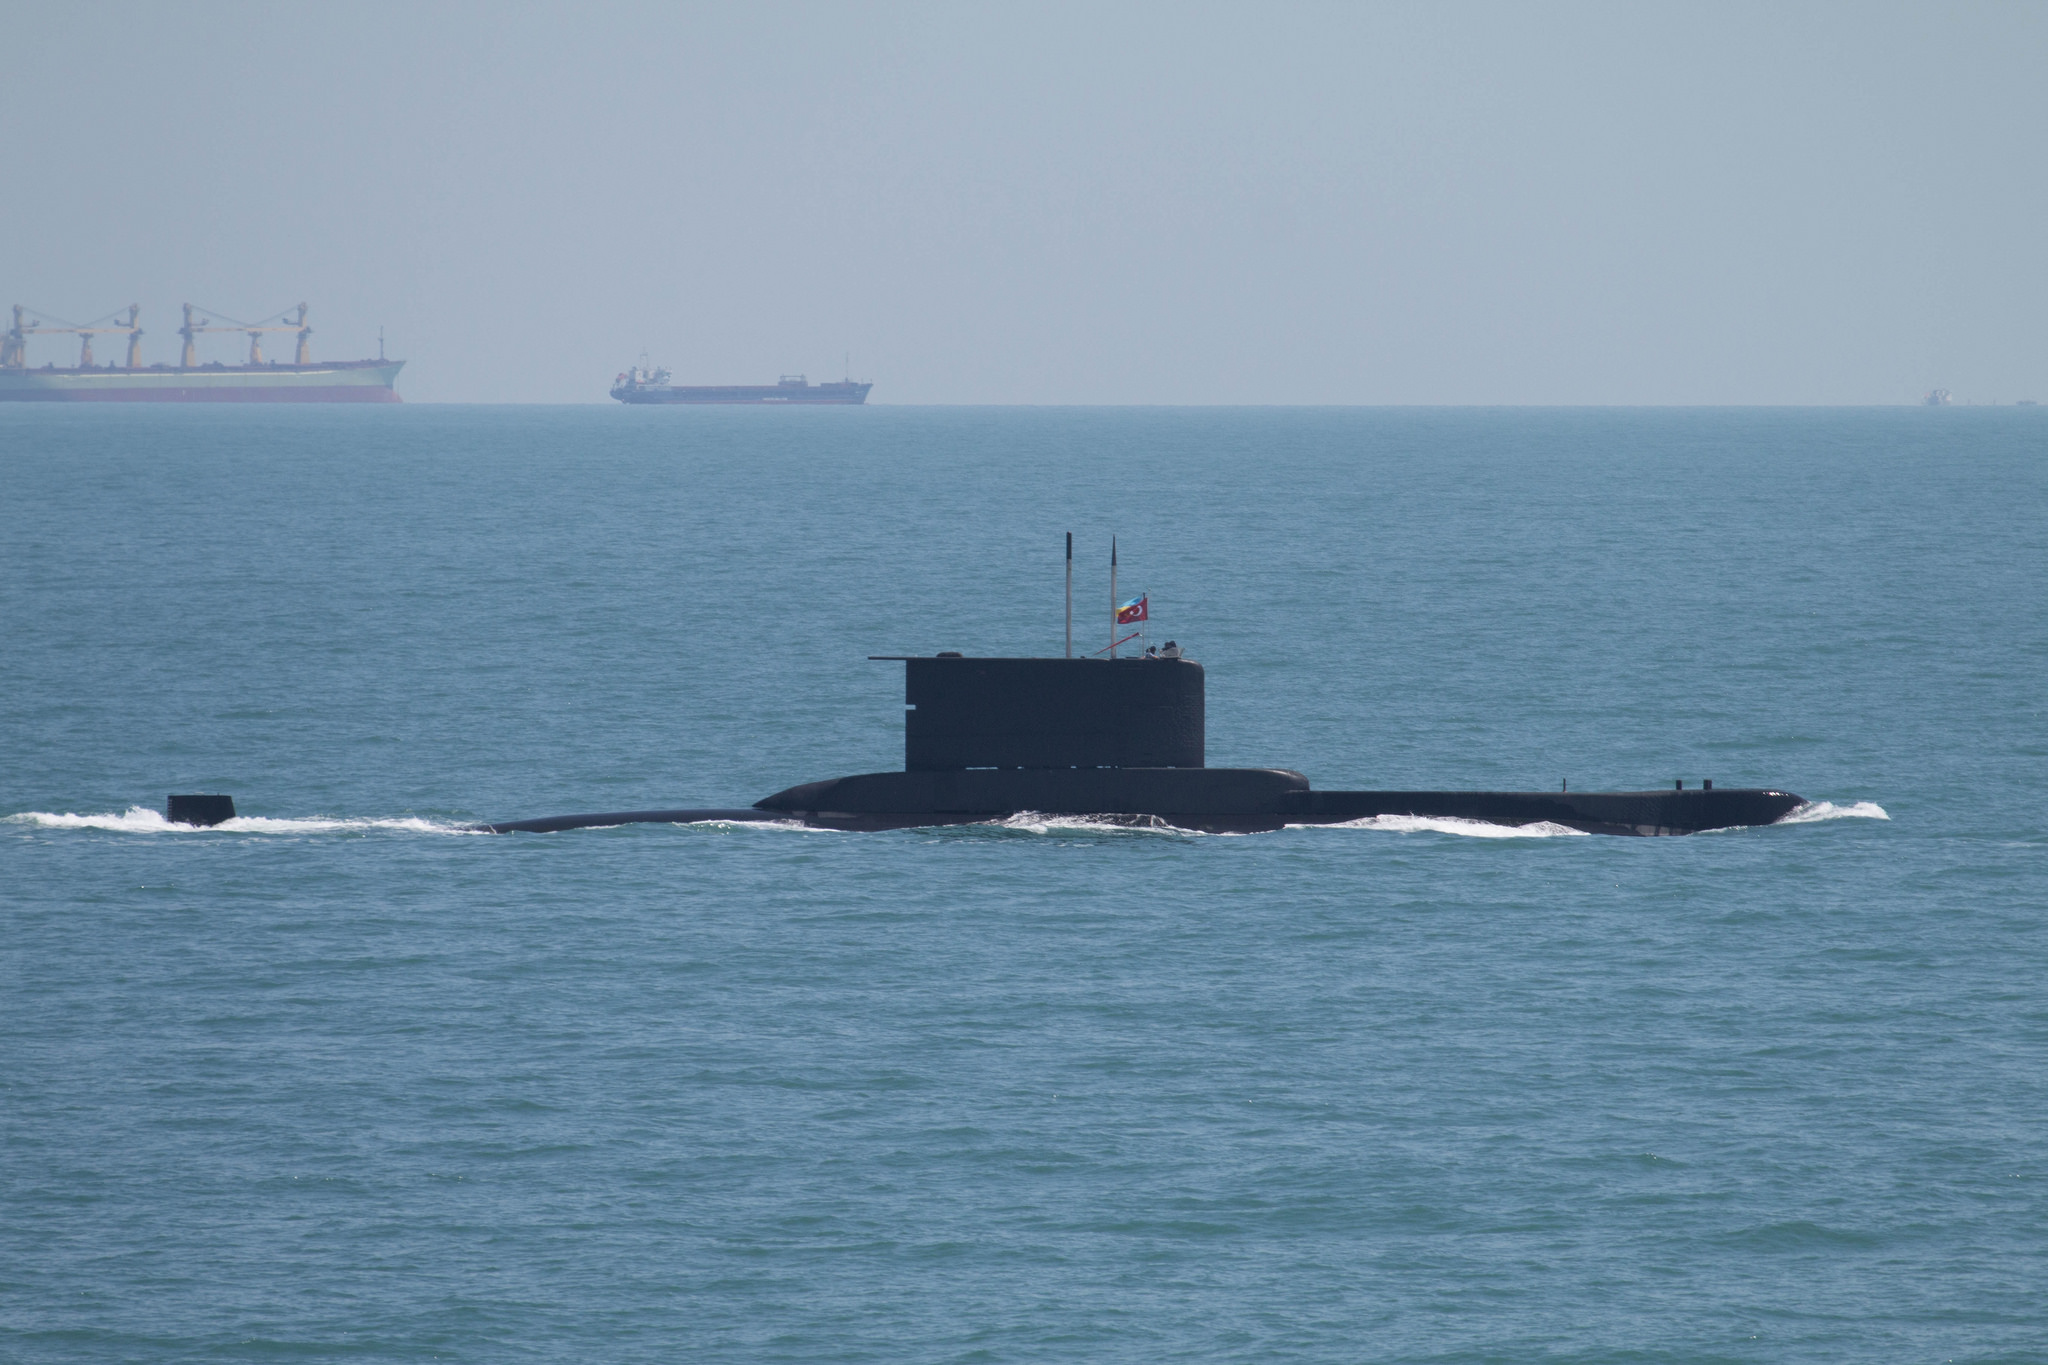 The Turkish Navy submarine TCG Batiray (S 349) departs Odessa, Ukraine, for the second at-sea phase of exercise Sea Breeze 2017 July 18. Sea Breeze is a U.S. and Ukraine co-hosted multi-national maritime exercise held in the Black Sea and is designed to enhance interoperability of participating nations and strengthen maritime security within the region.